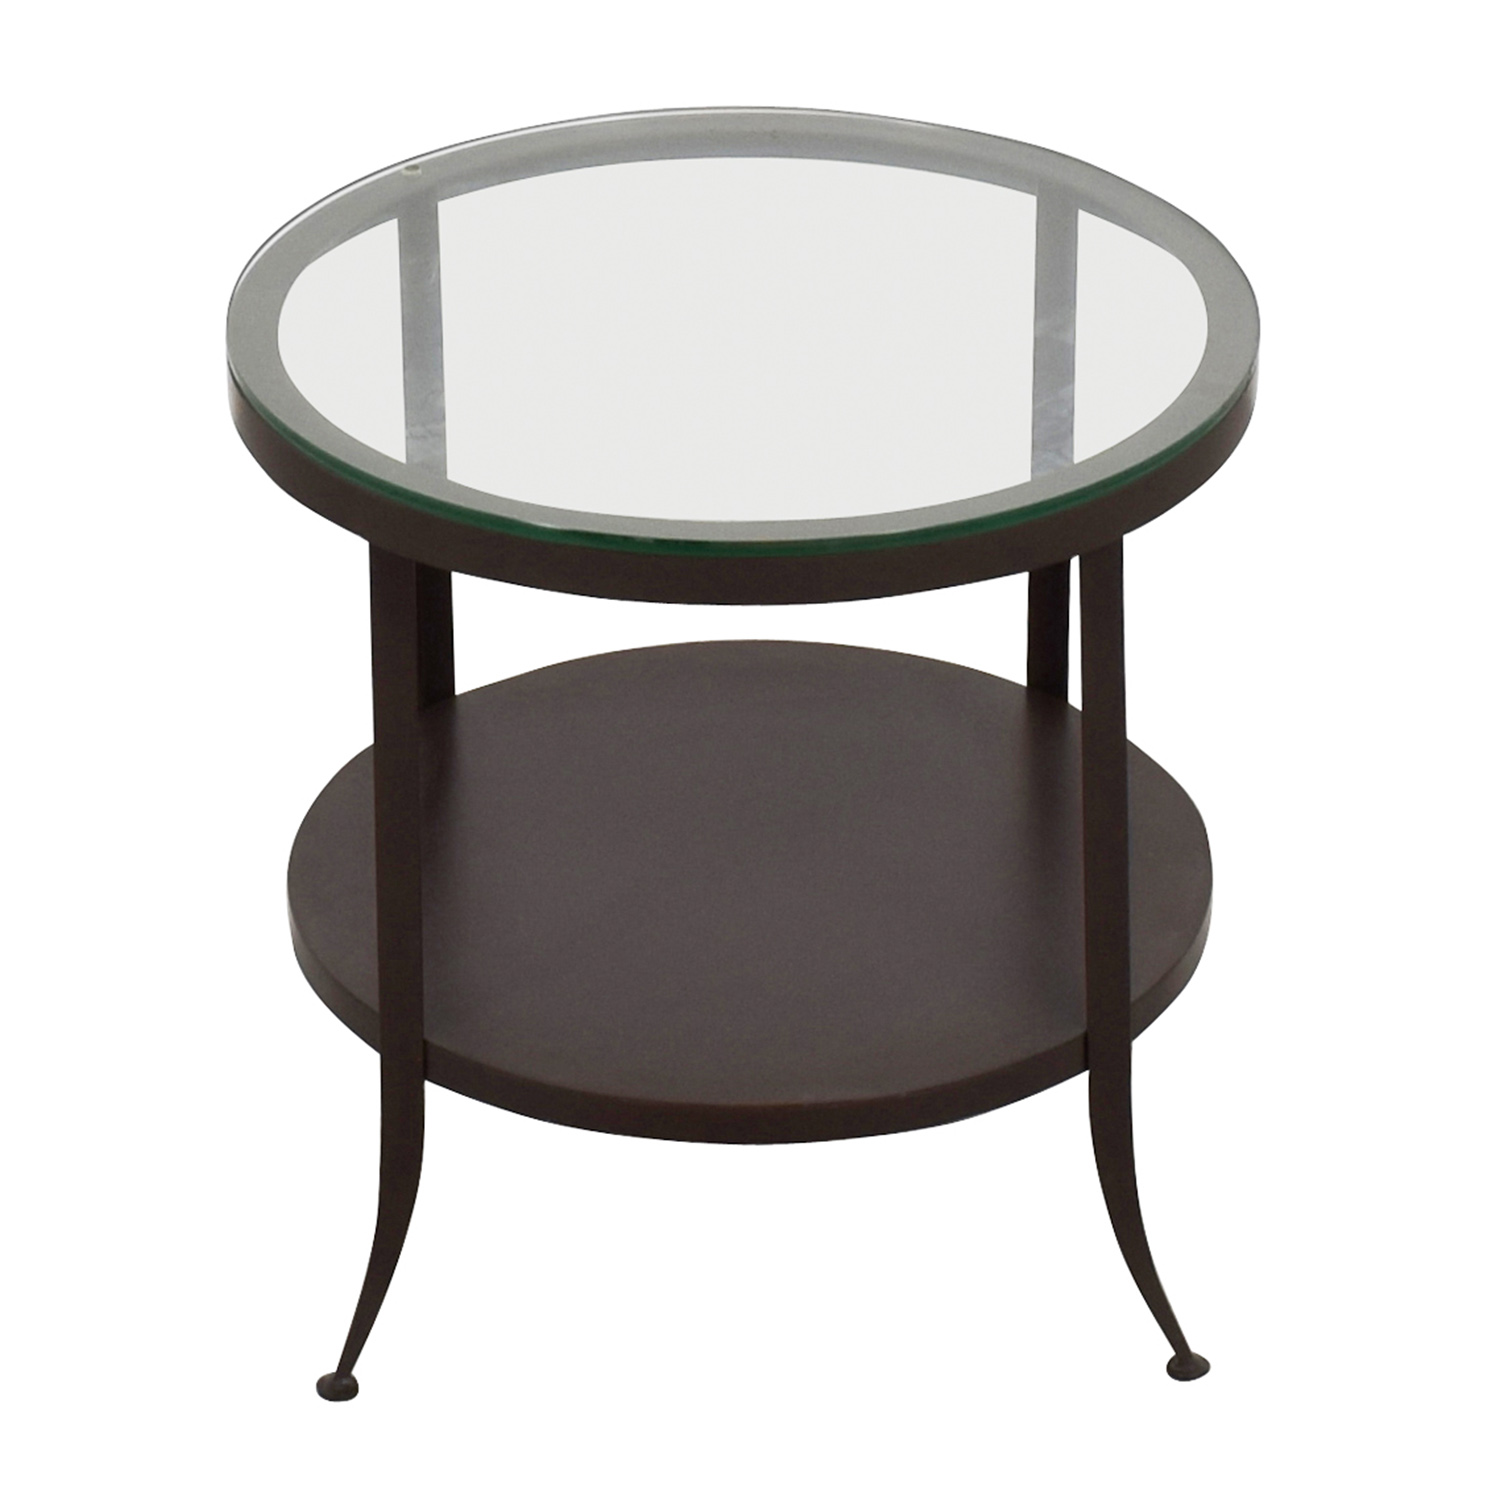 buy Crate & Barrel Round Glass Top End Table Crate and Barrel